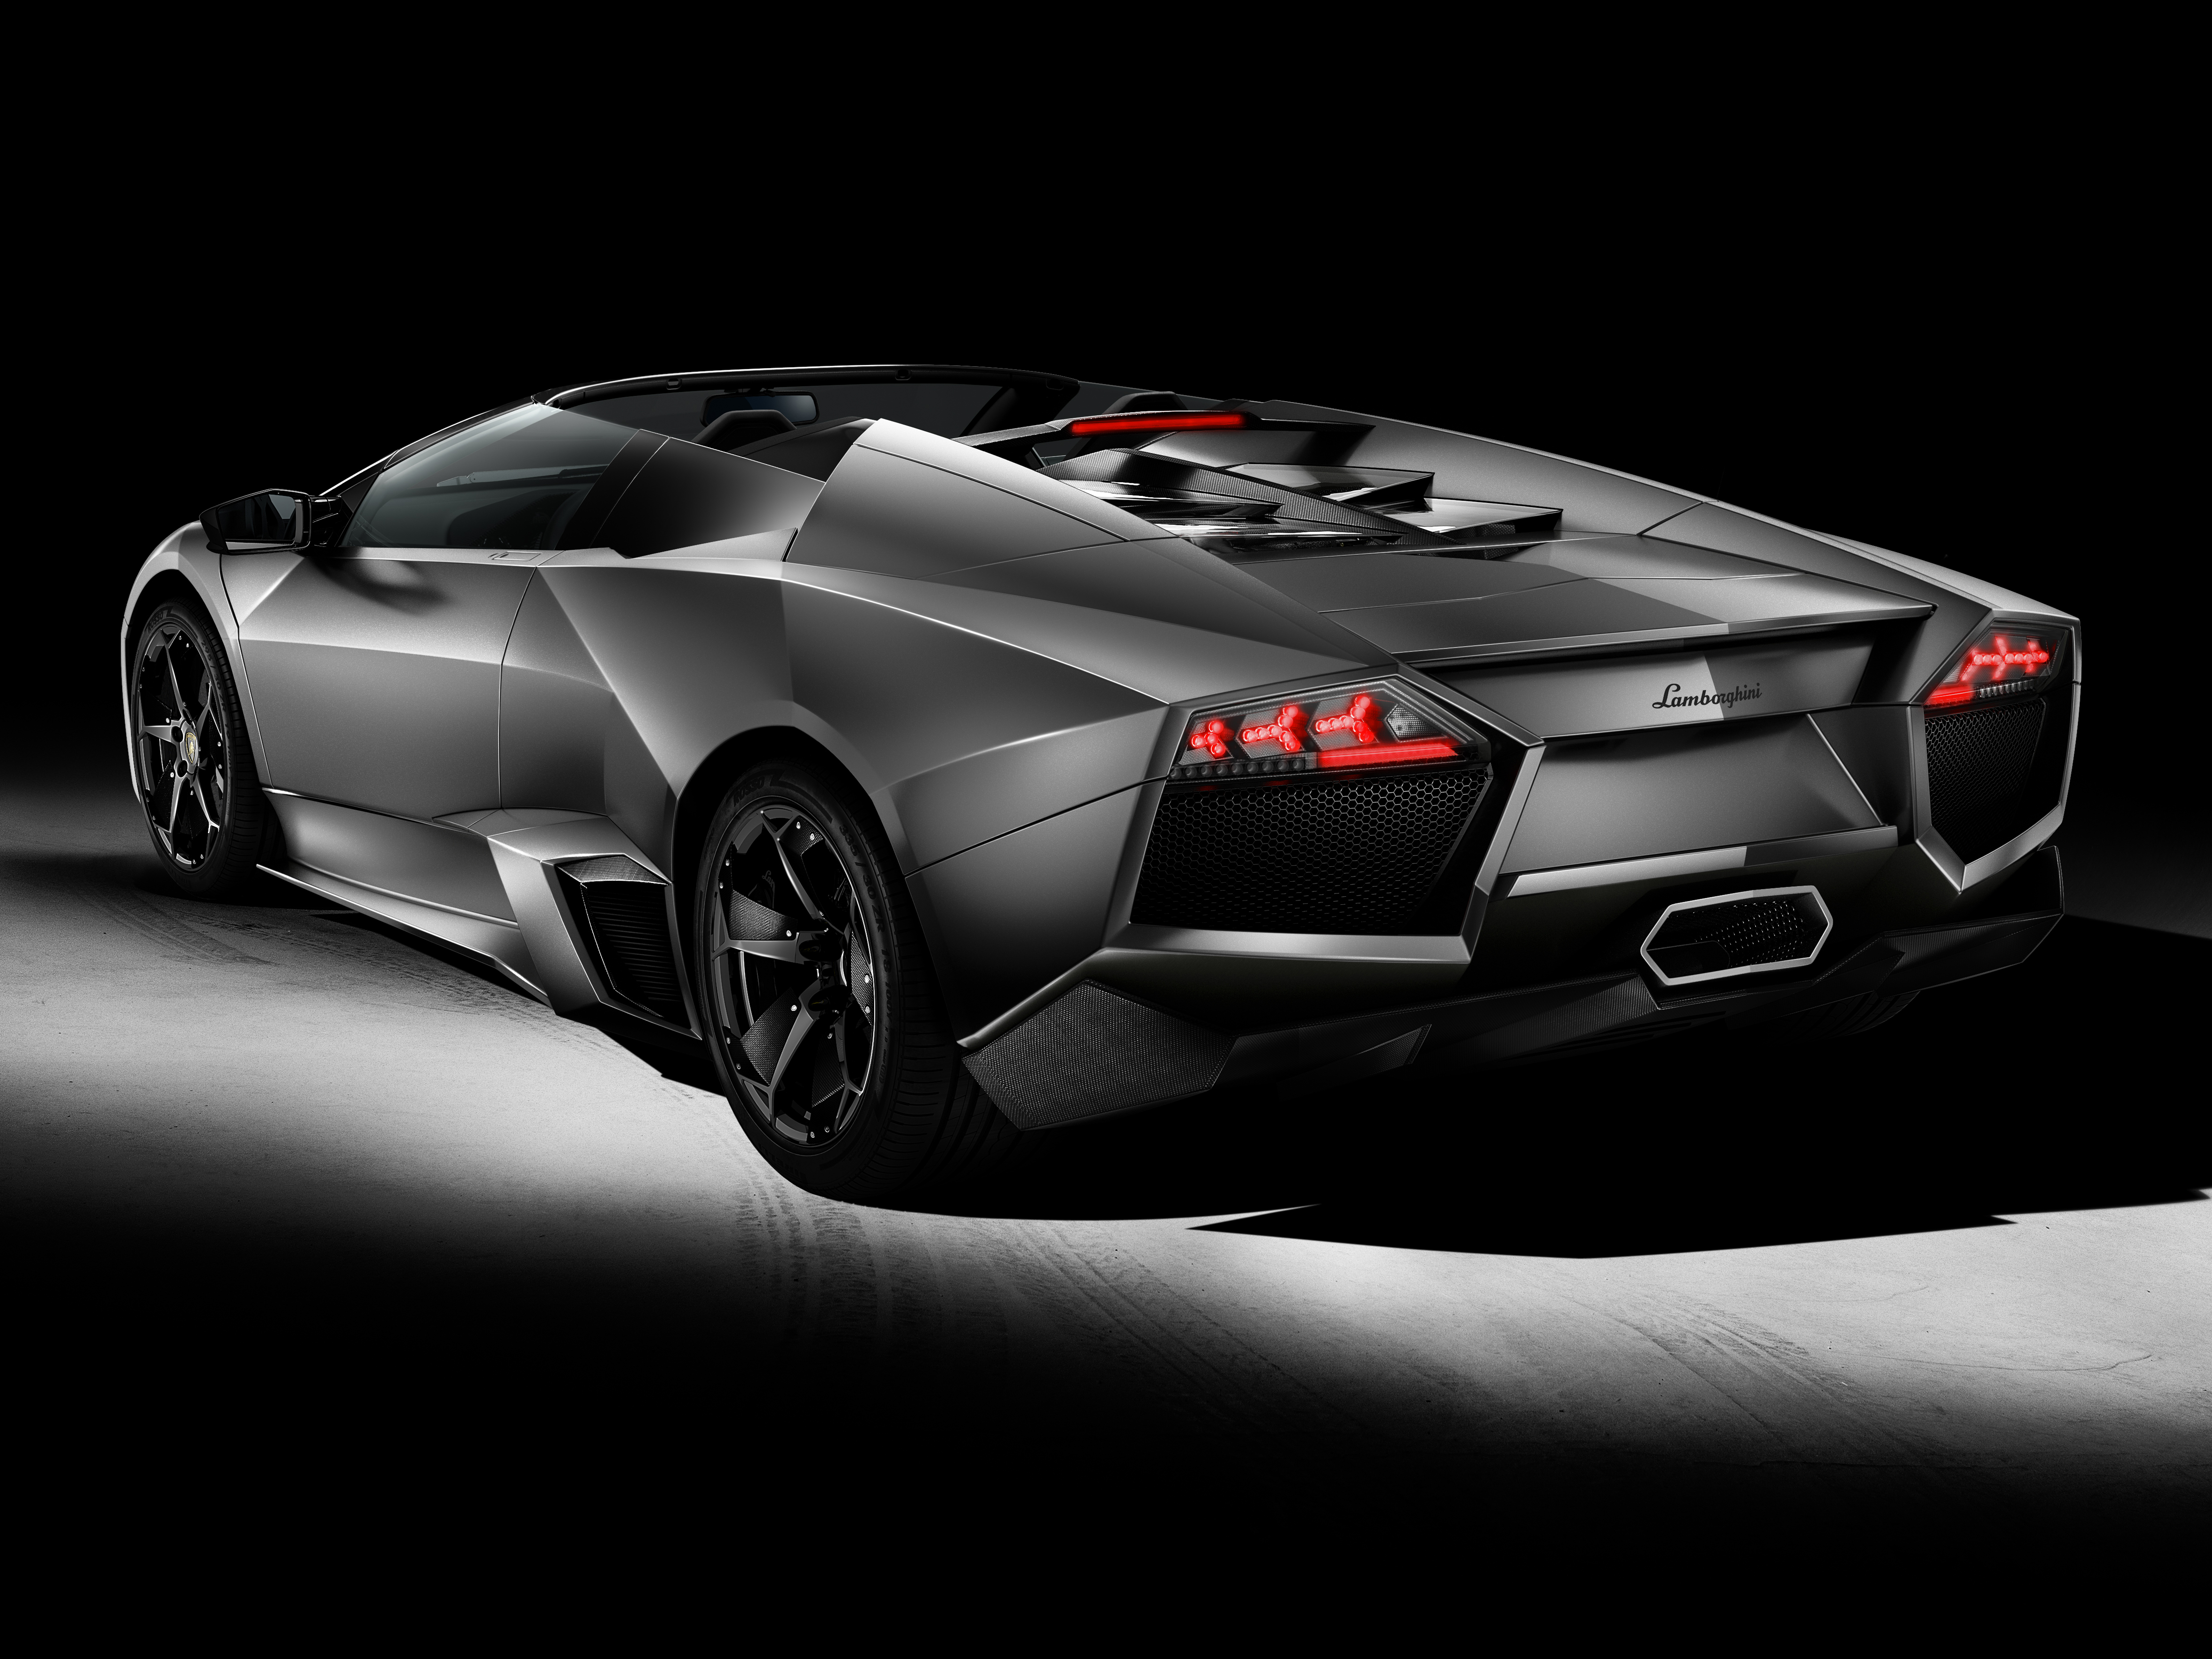 cars vehicles rear angle HD Wallpaper